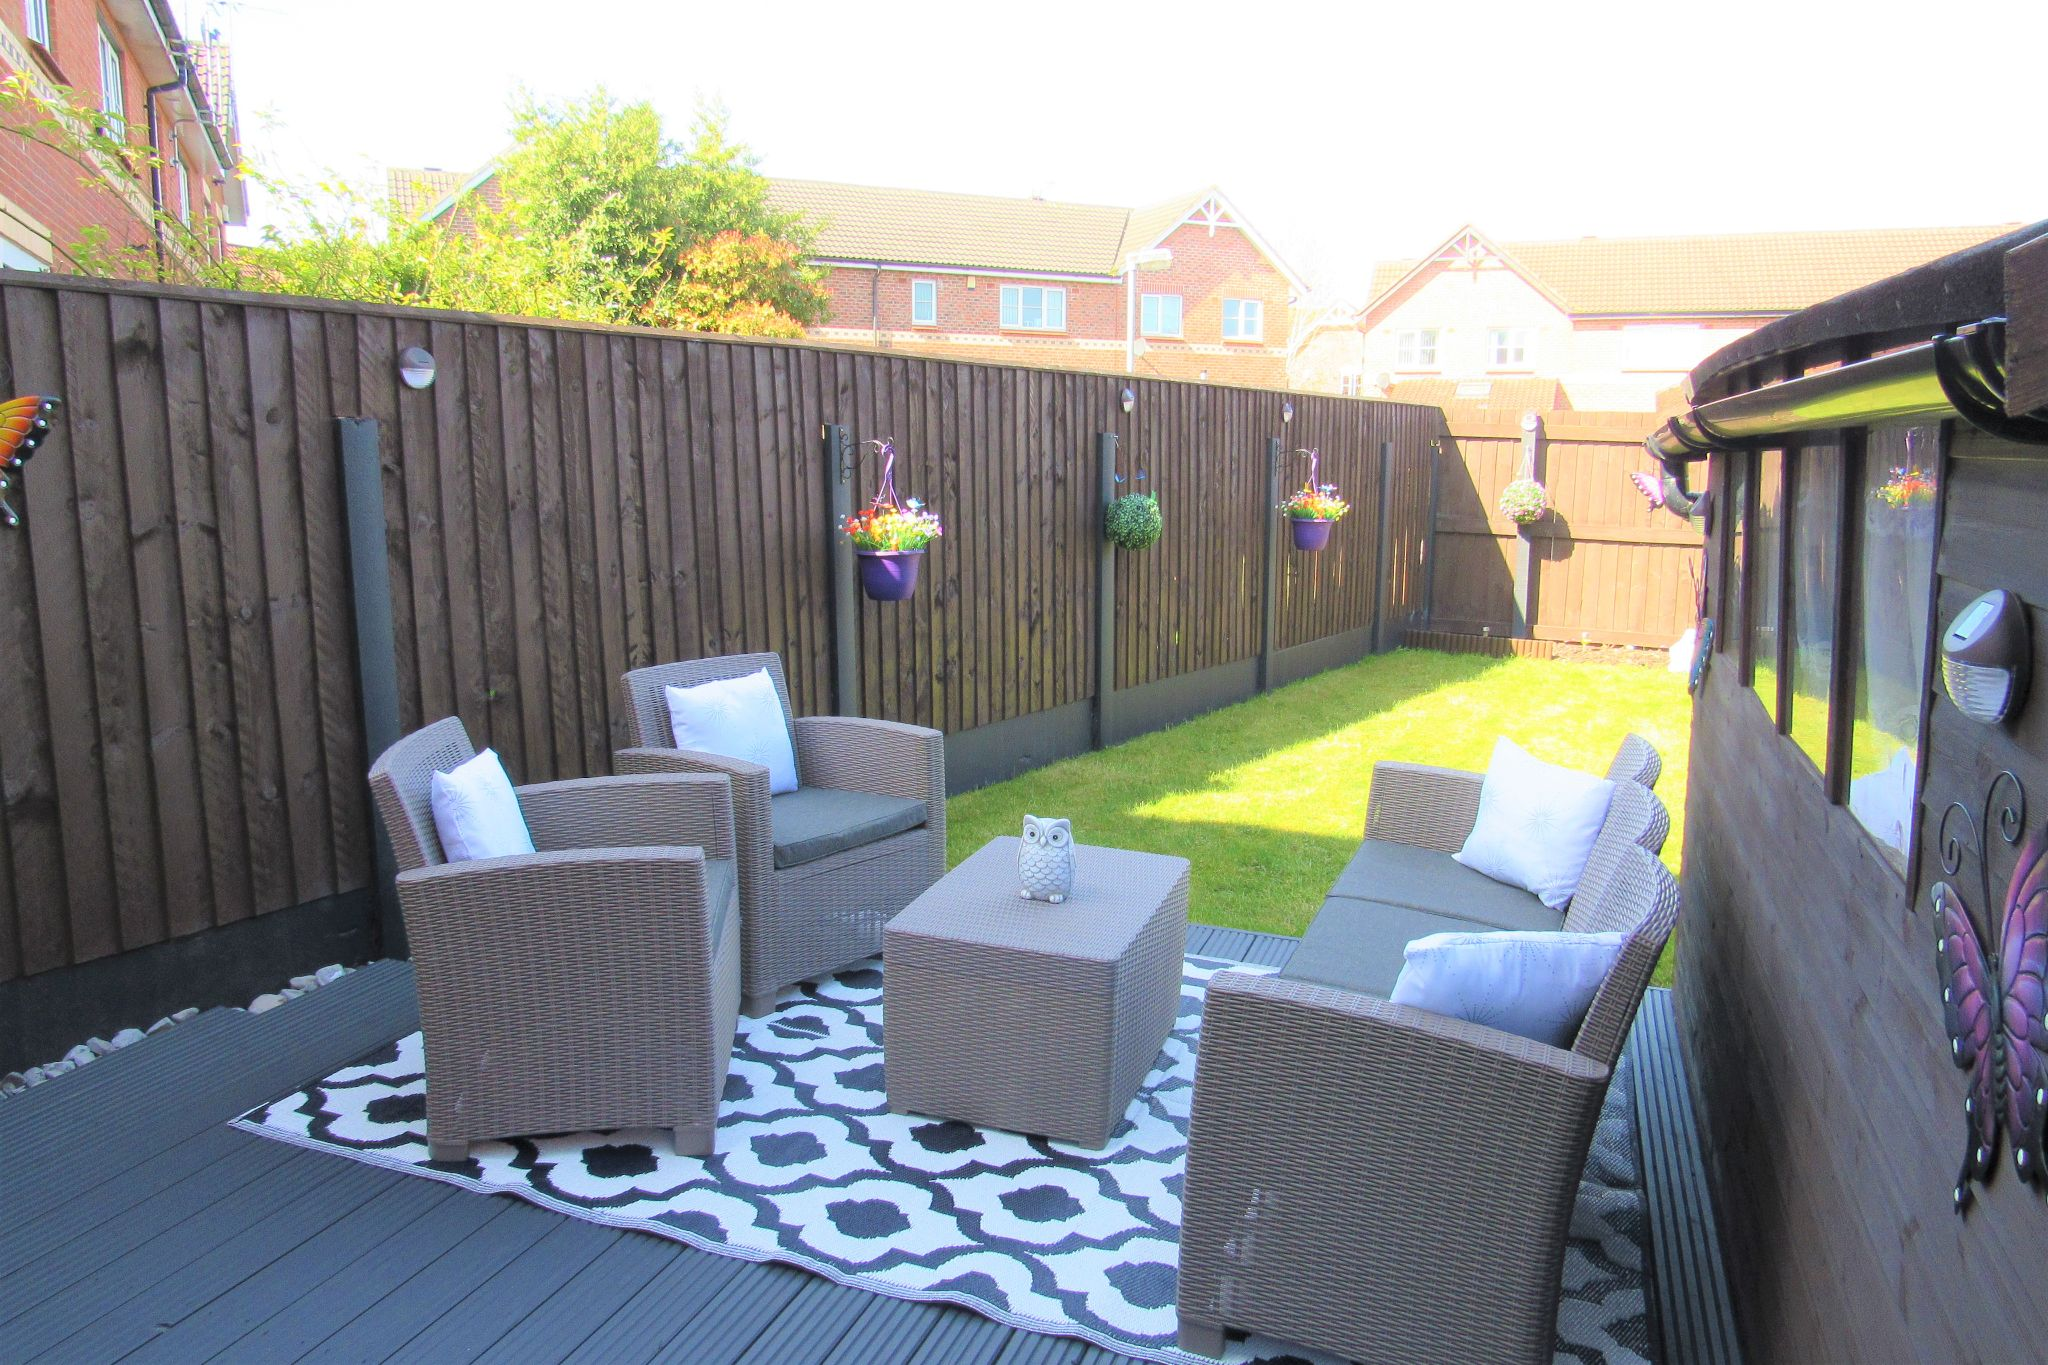 2 bedroom semi-detached house SSTC in Manchester - Photograph 22.